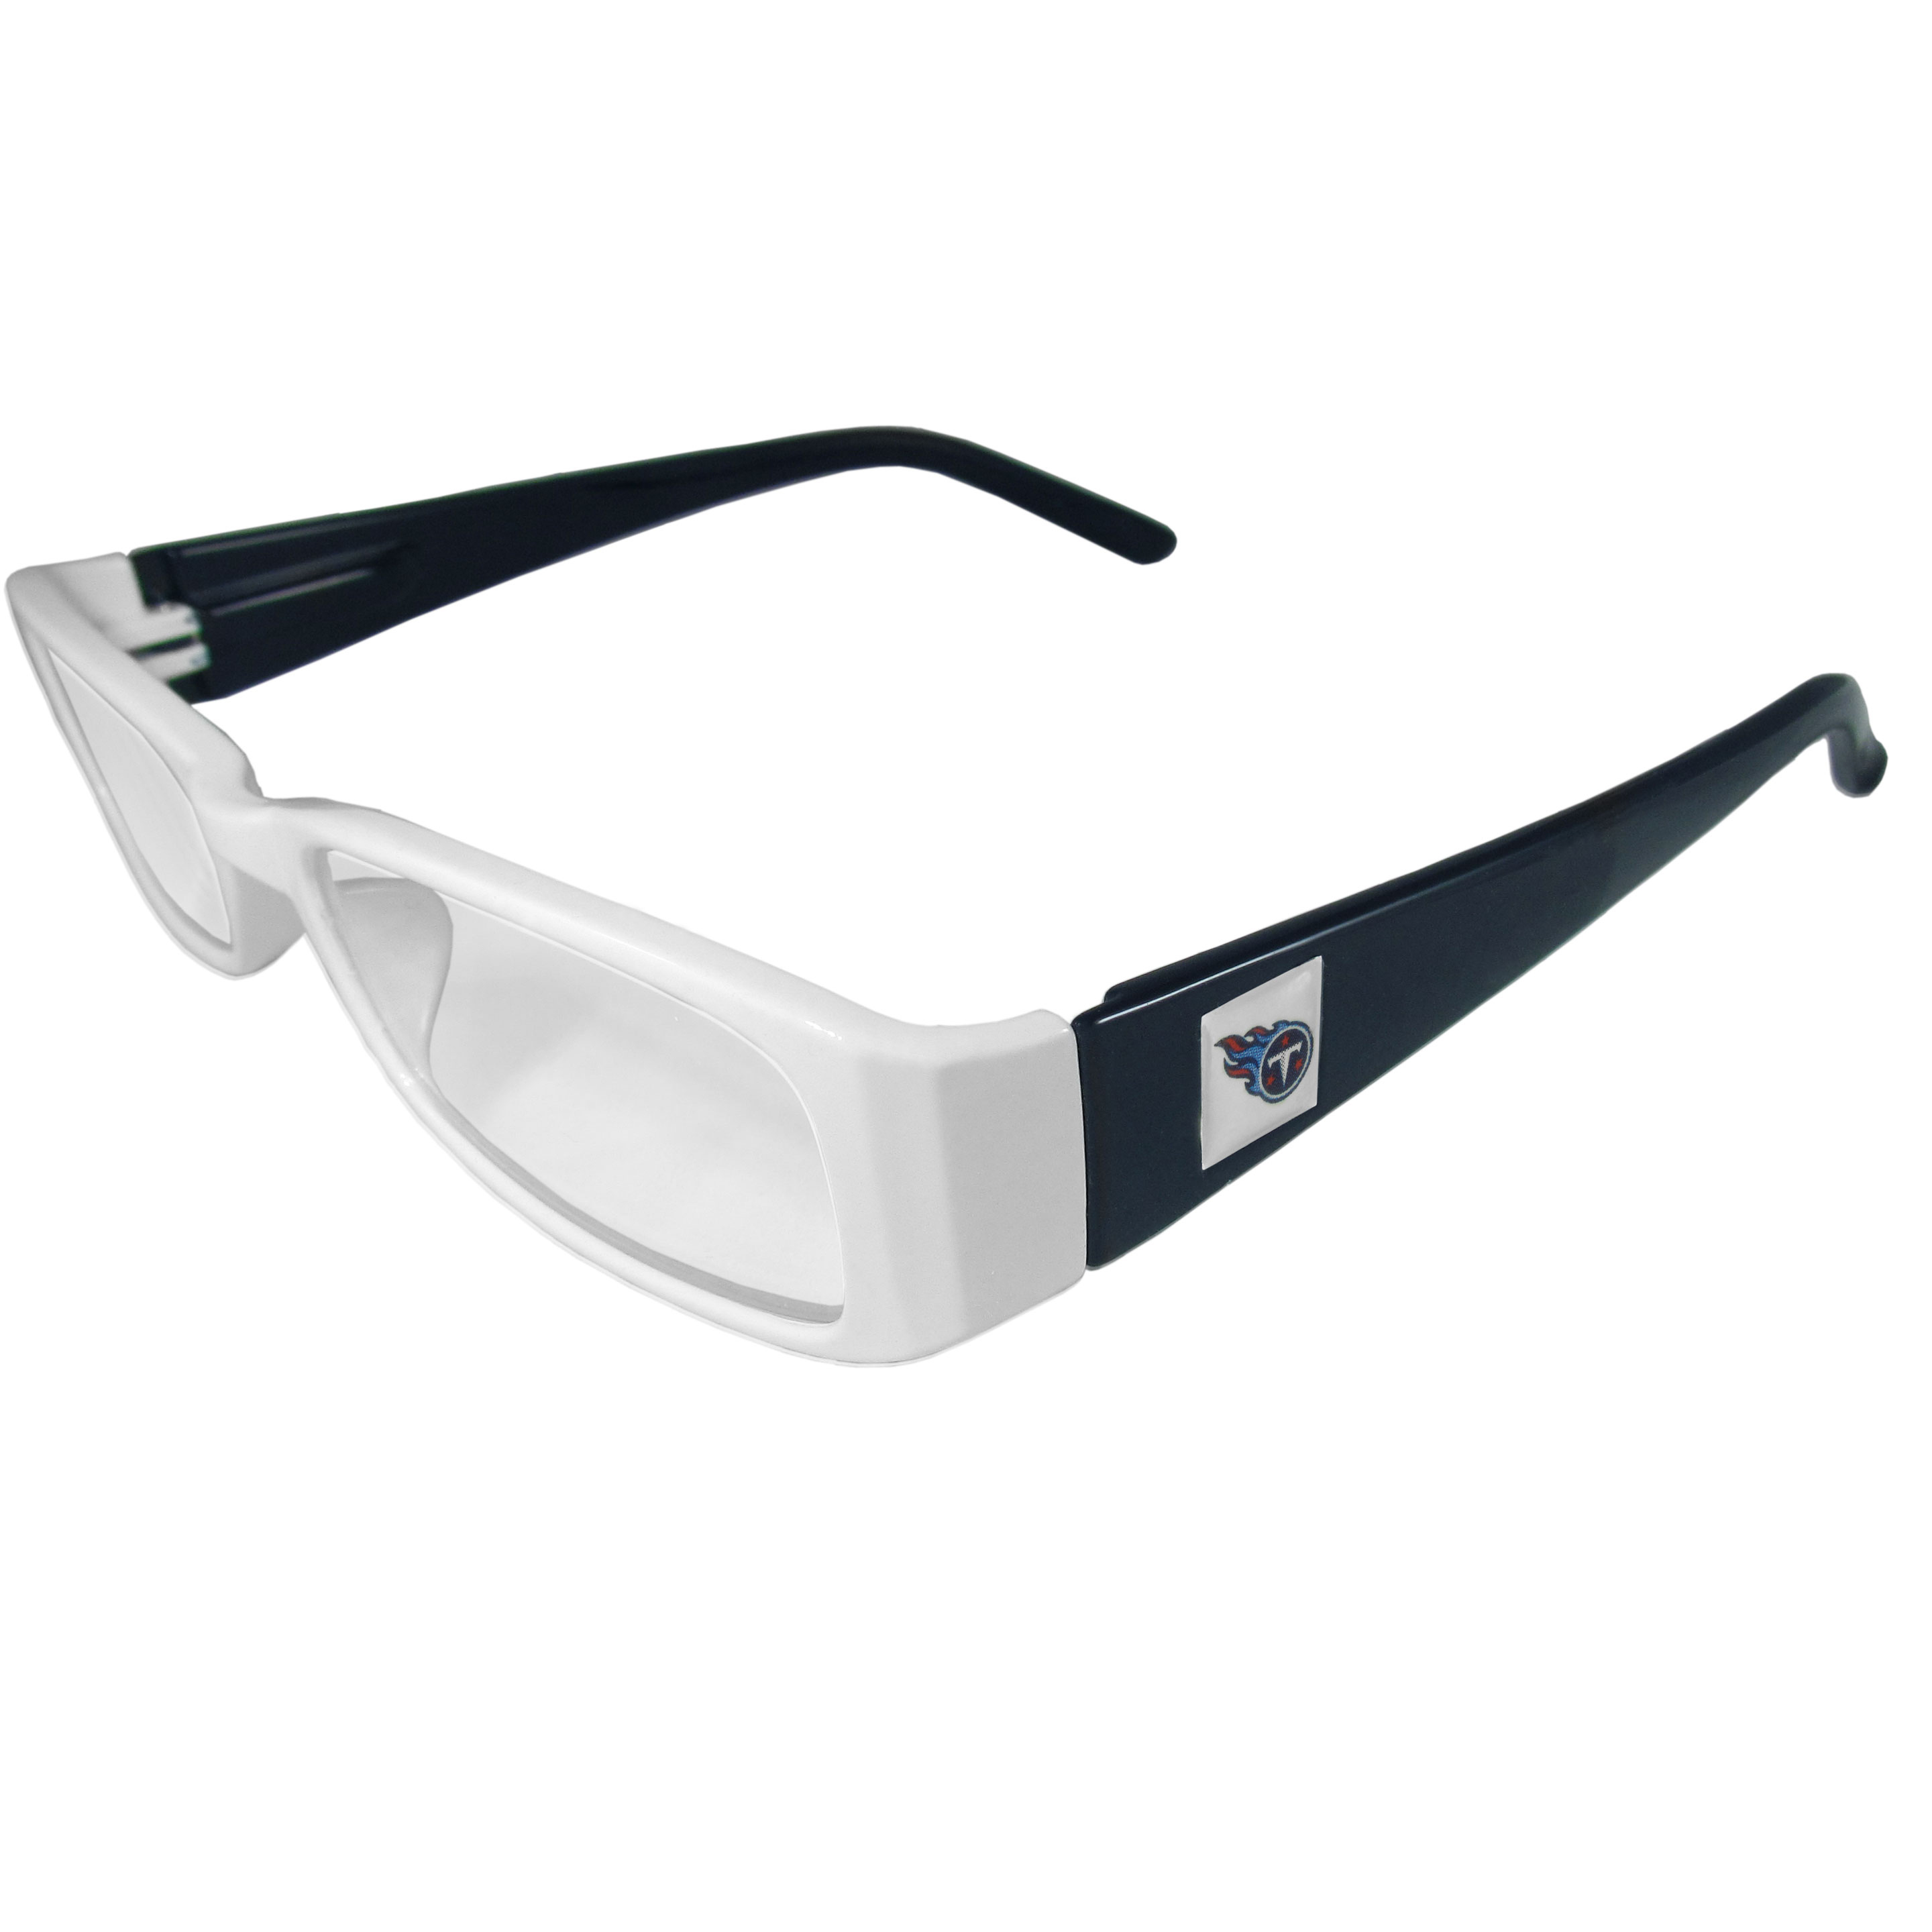 Tennessee Titans Reading Glasses +1.25 - Our Tennessee Titans reading glasses are 5.25 inches wide and feature the team logo on each arm. Magnification Power 1.25